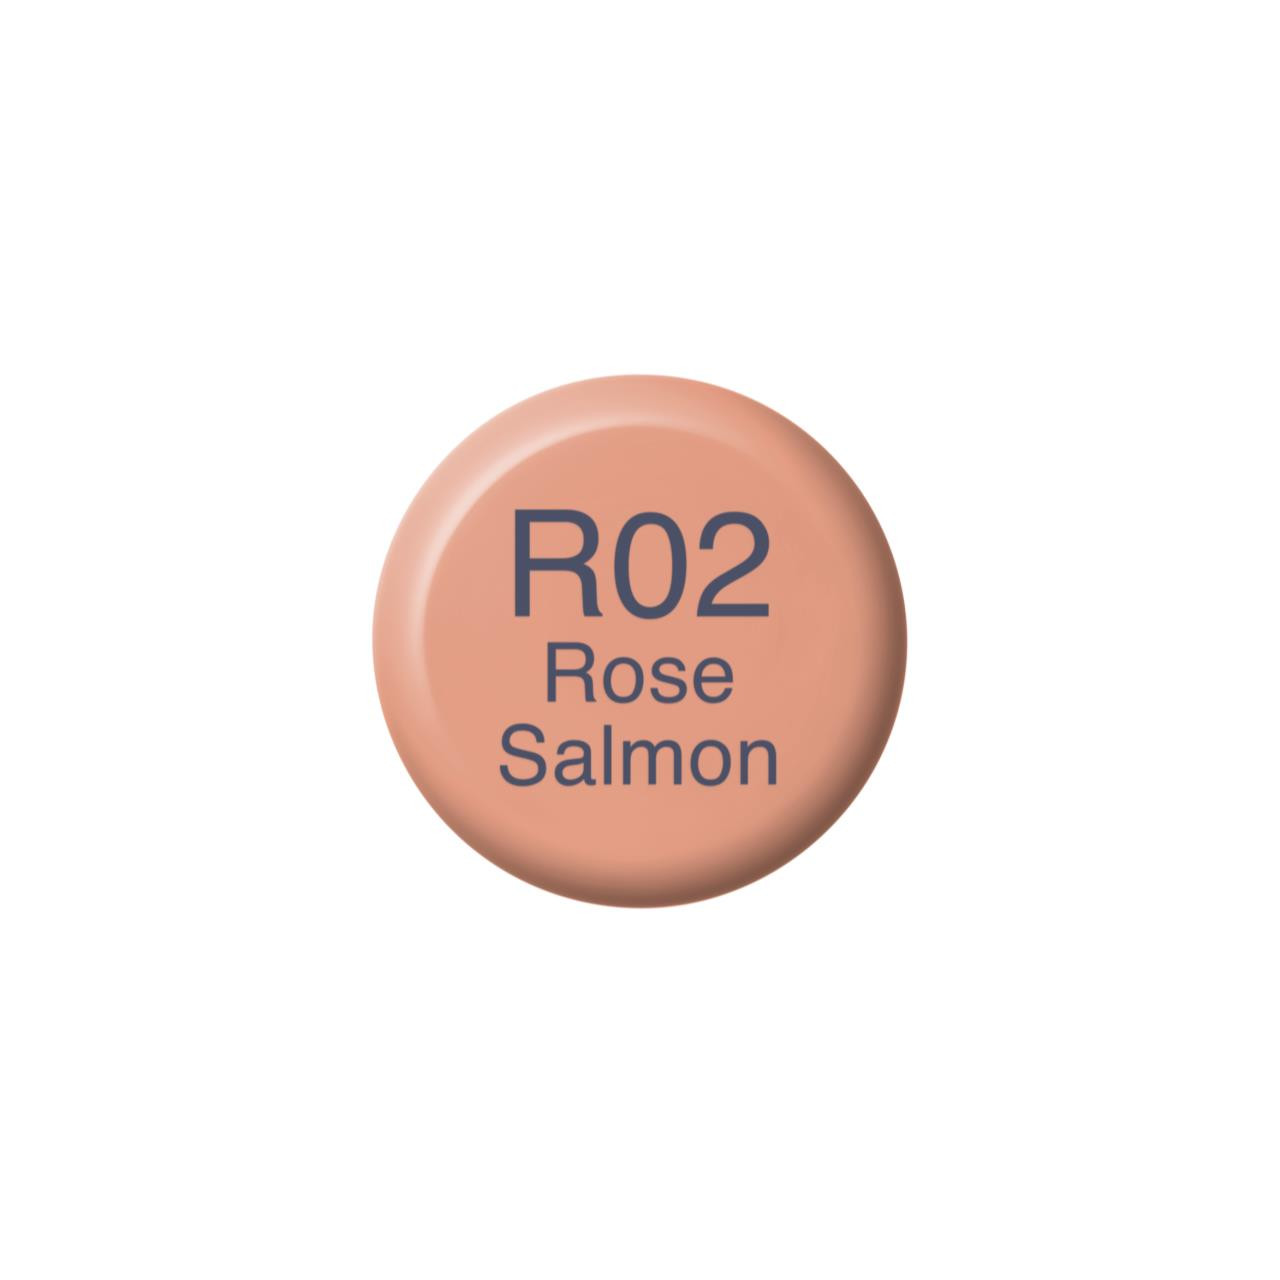 R02 Rose Salmon, Copic Ink - 4511338057407